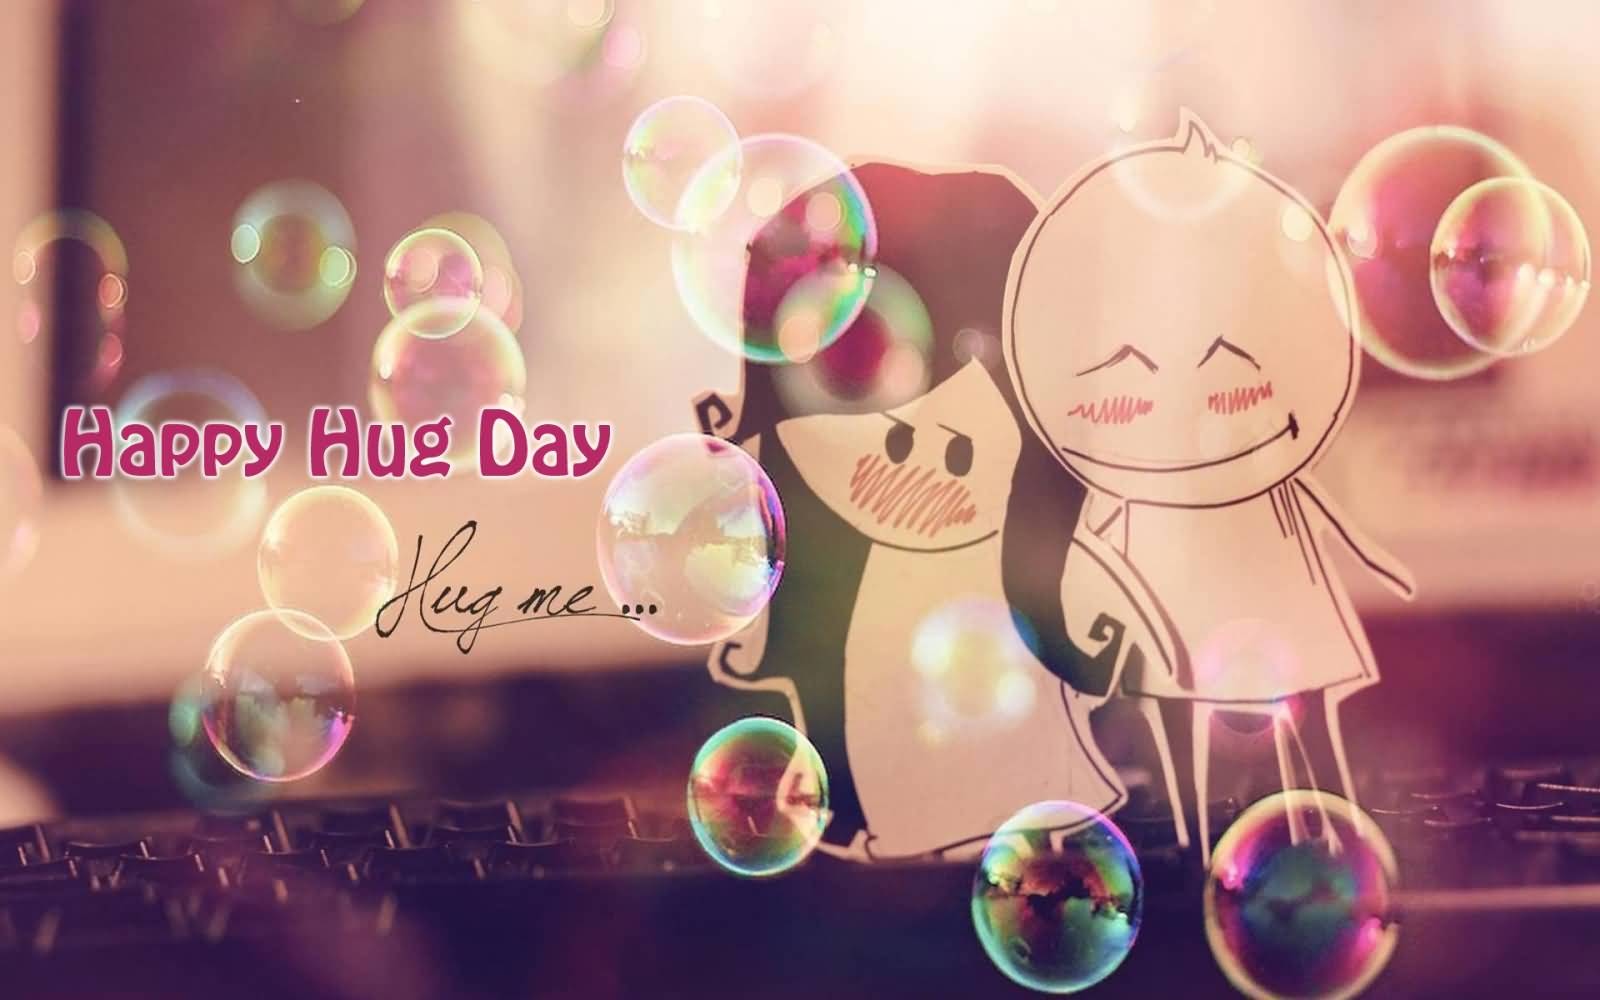 50 Happy Hug Day 2017 Wish Pictures